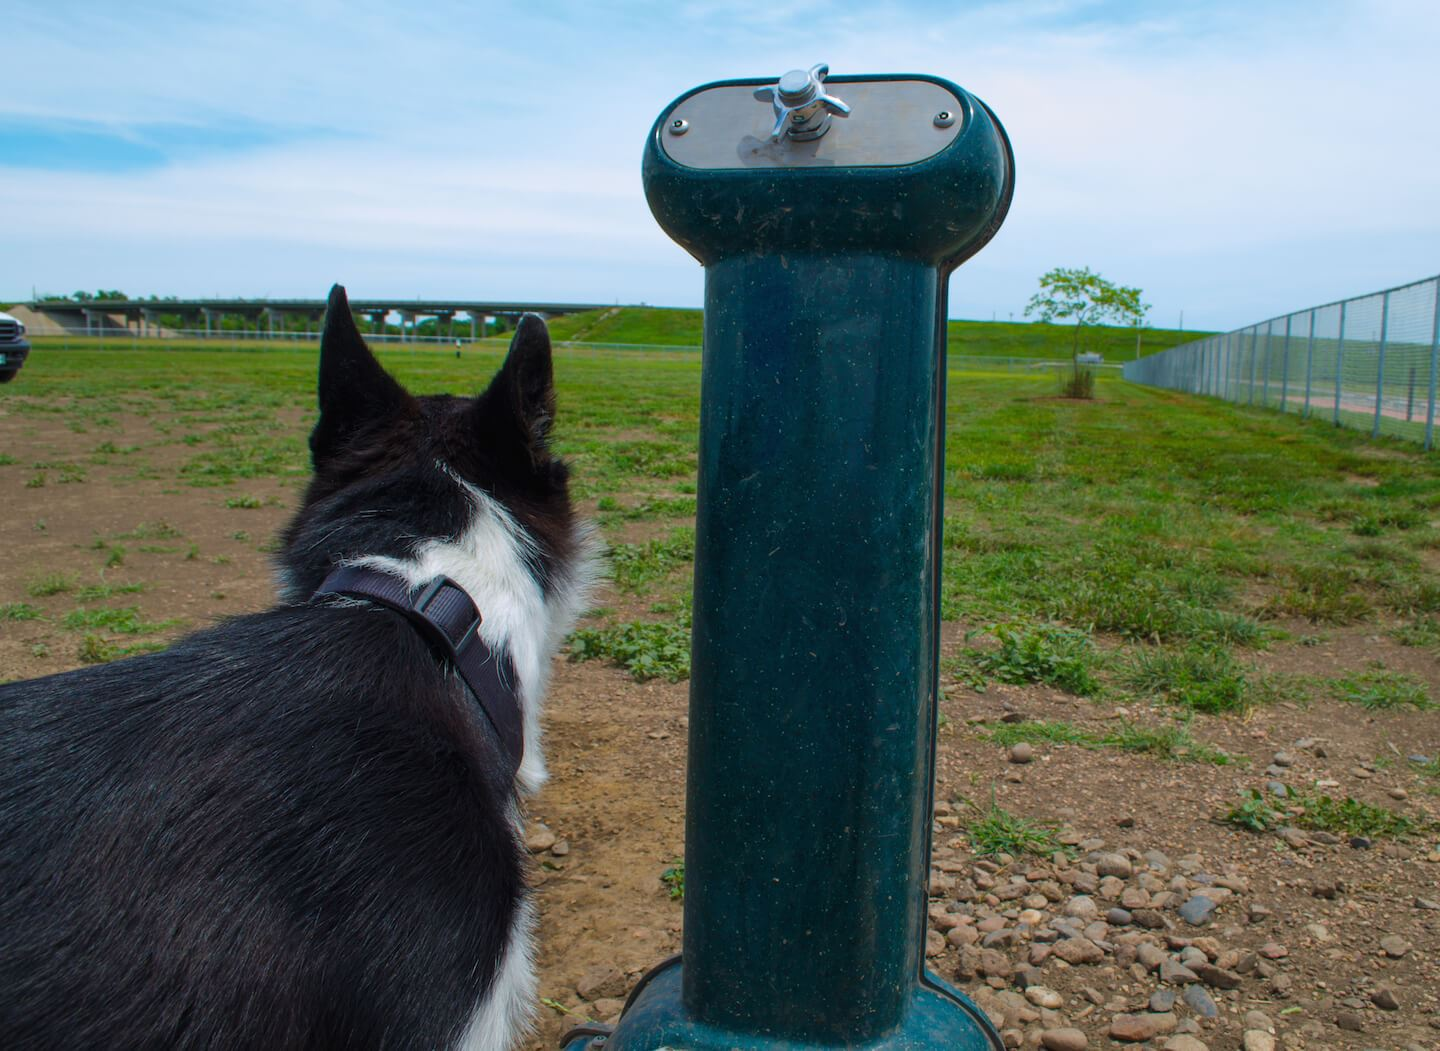 Black and white dog next to a dog drinking fountain